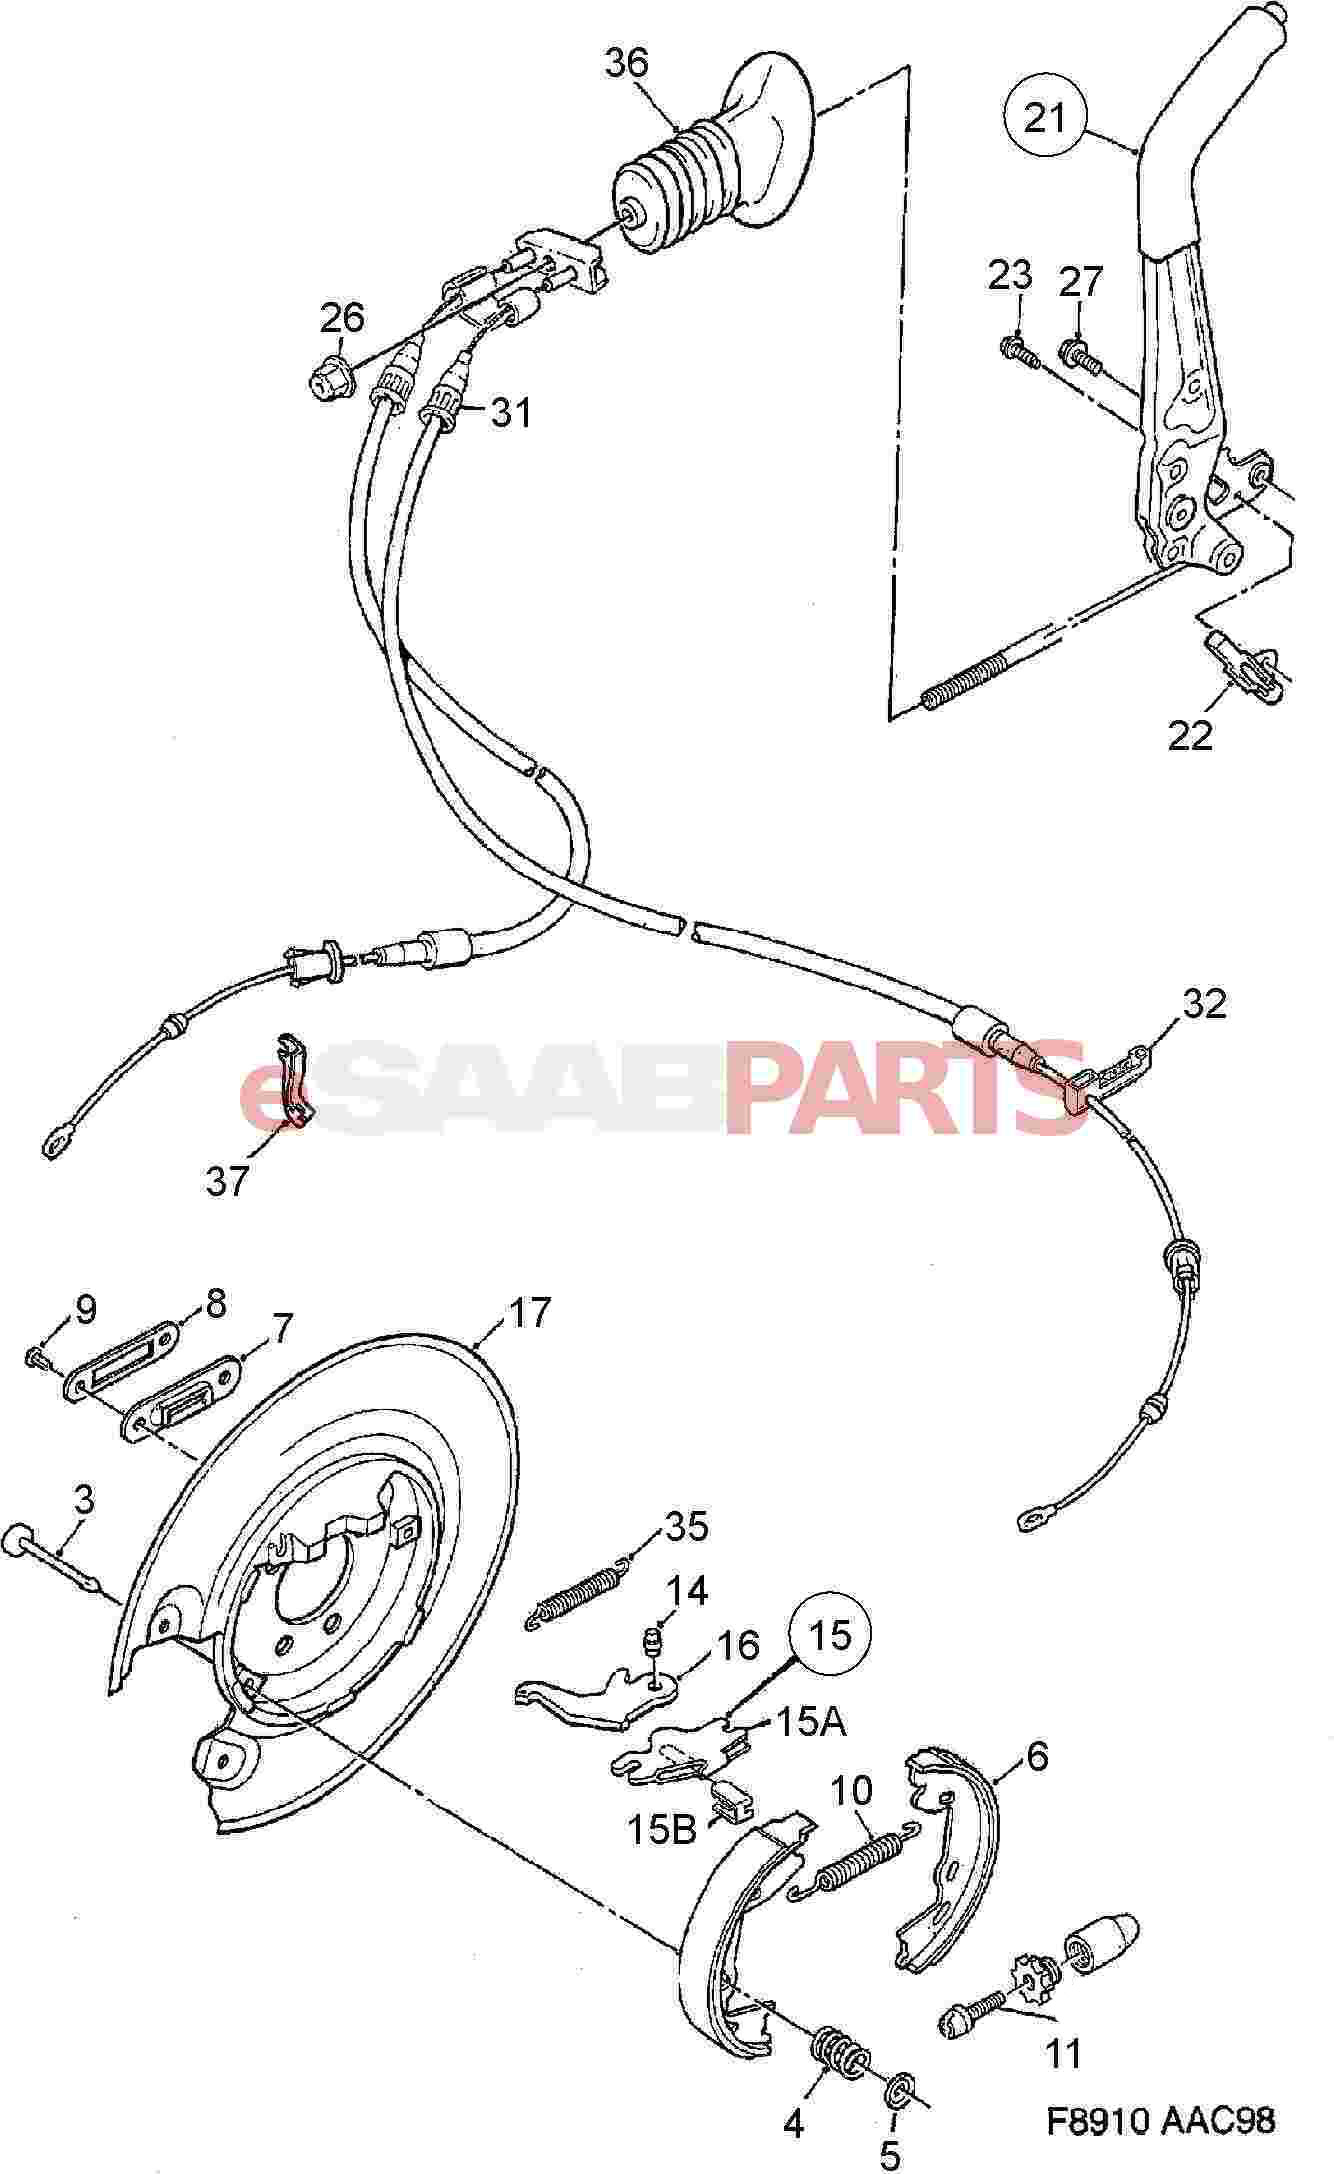 Service manual [1992 Saab 900 Diagram Showing Brake Line